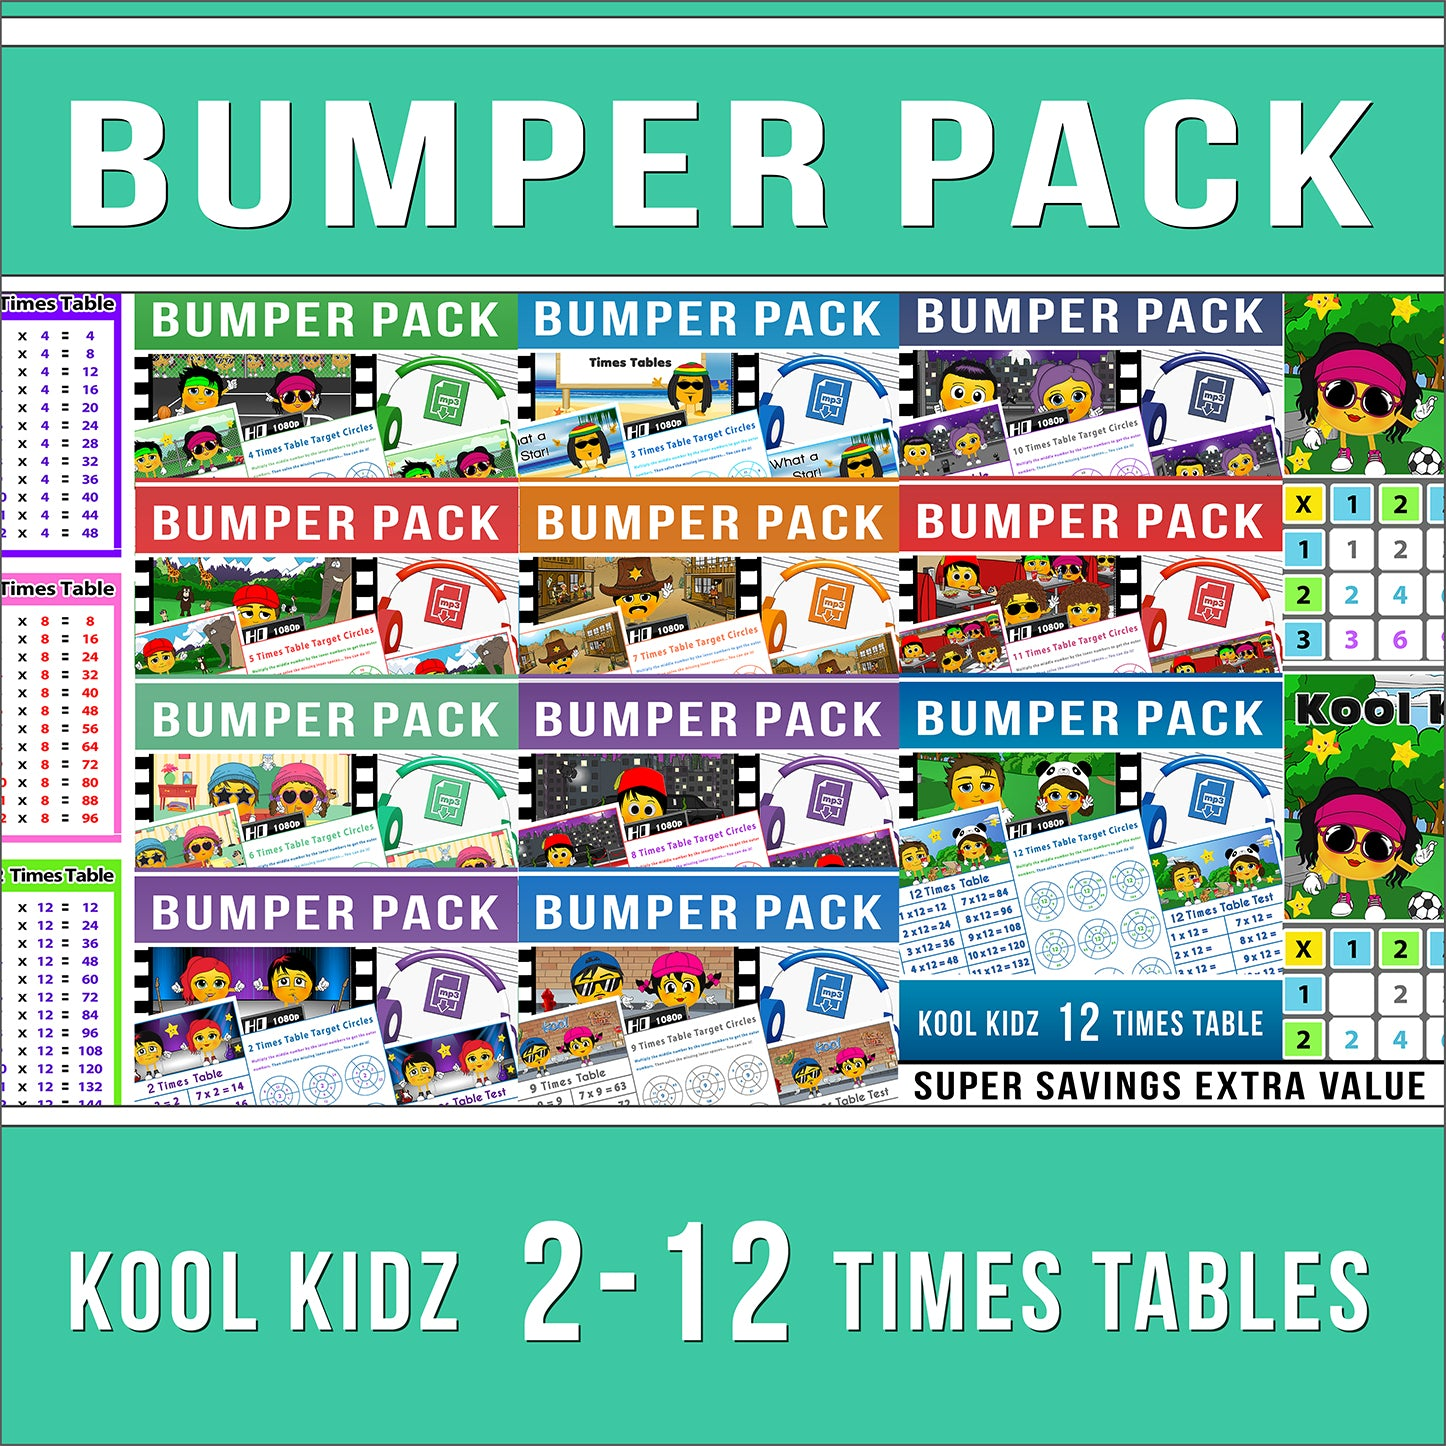 2-12 Times Table Bumper Pack